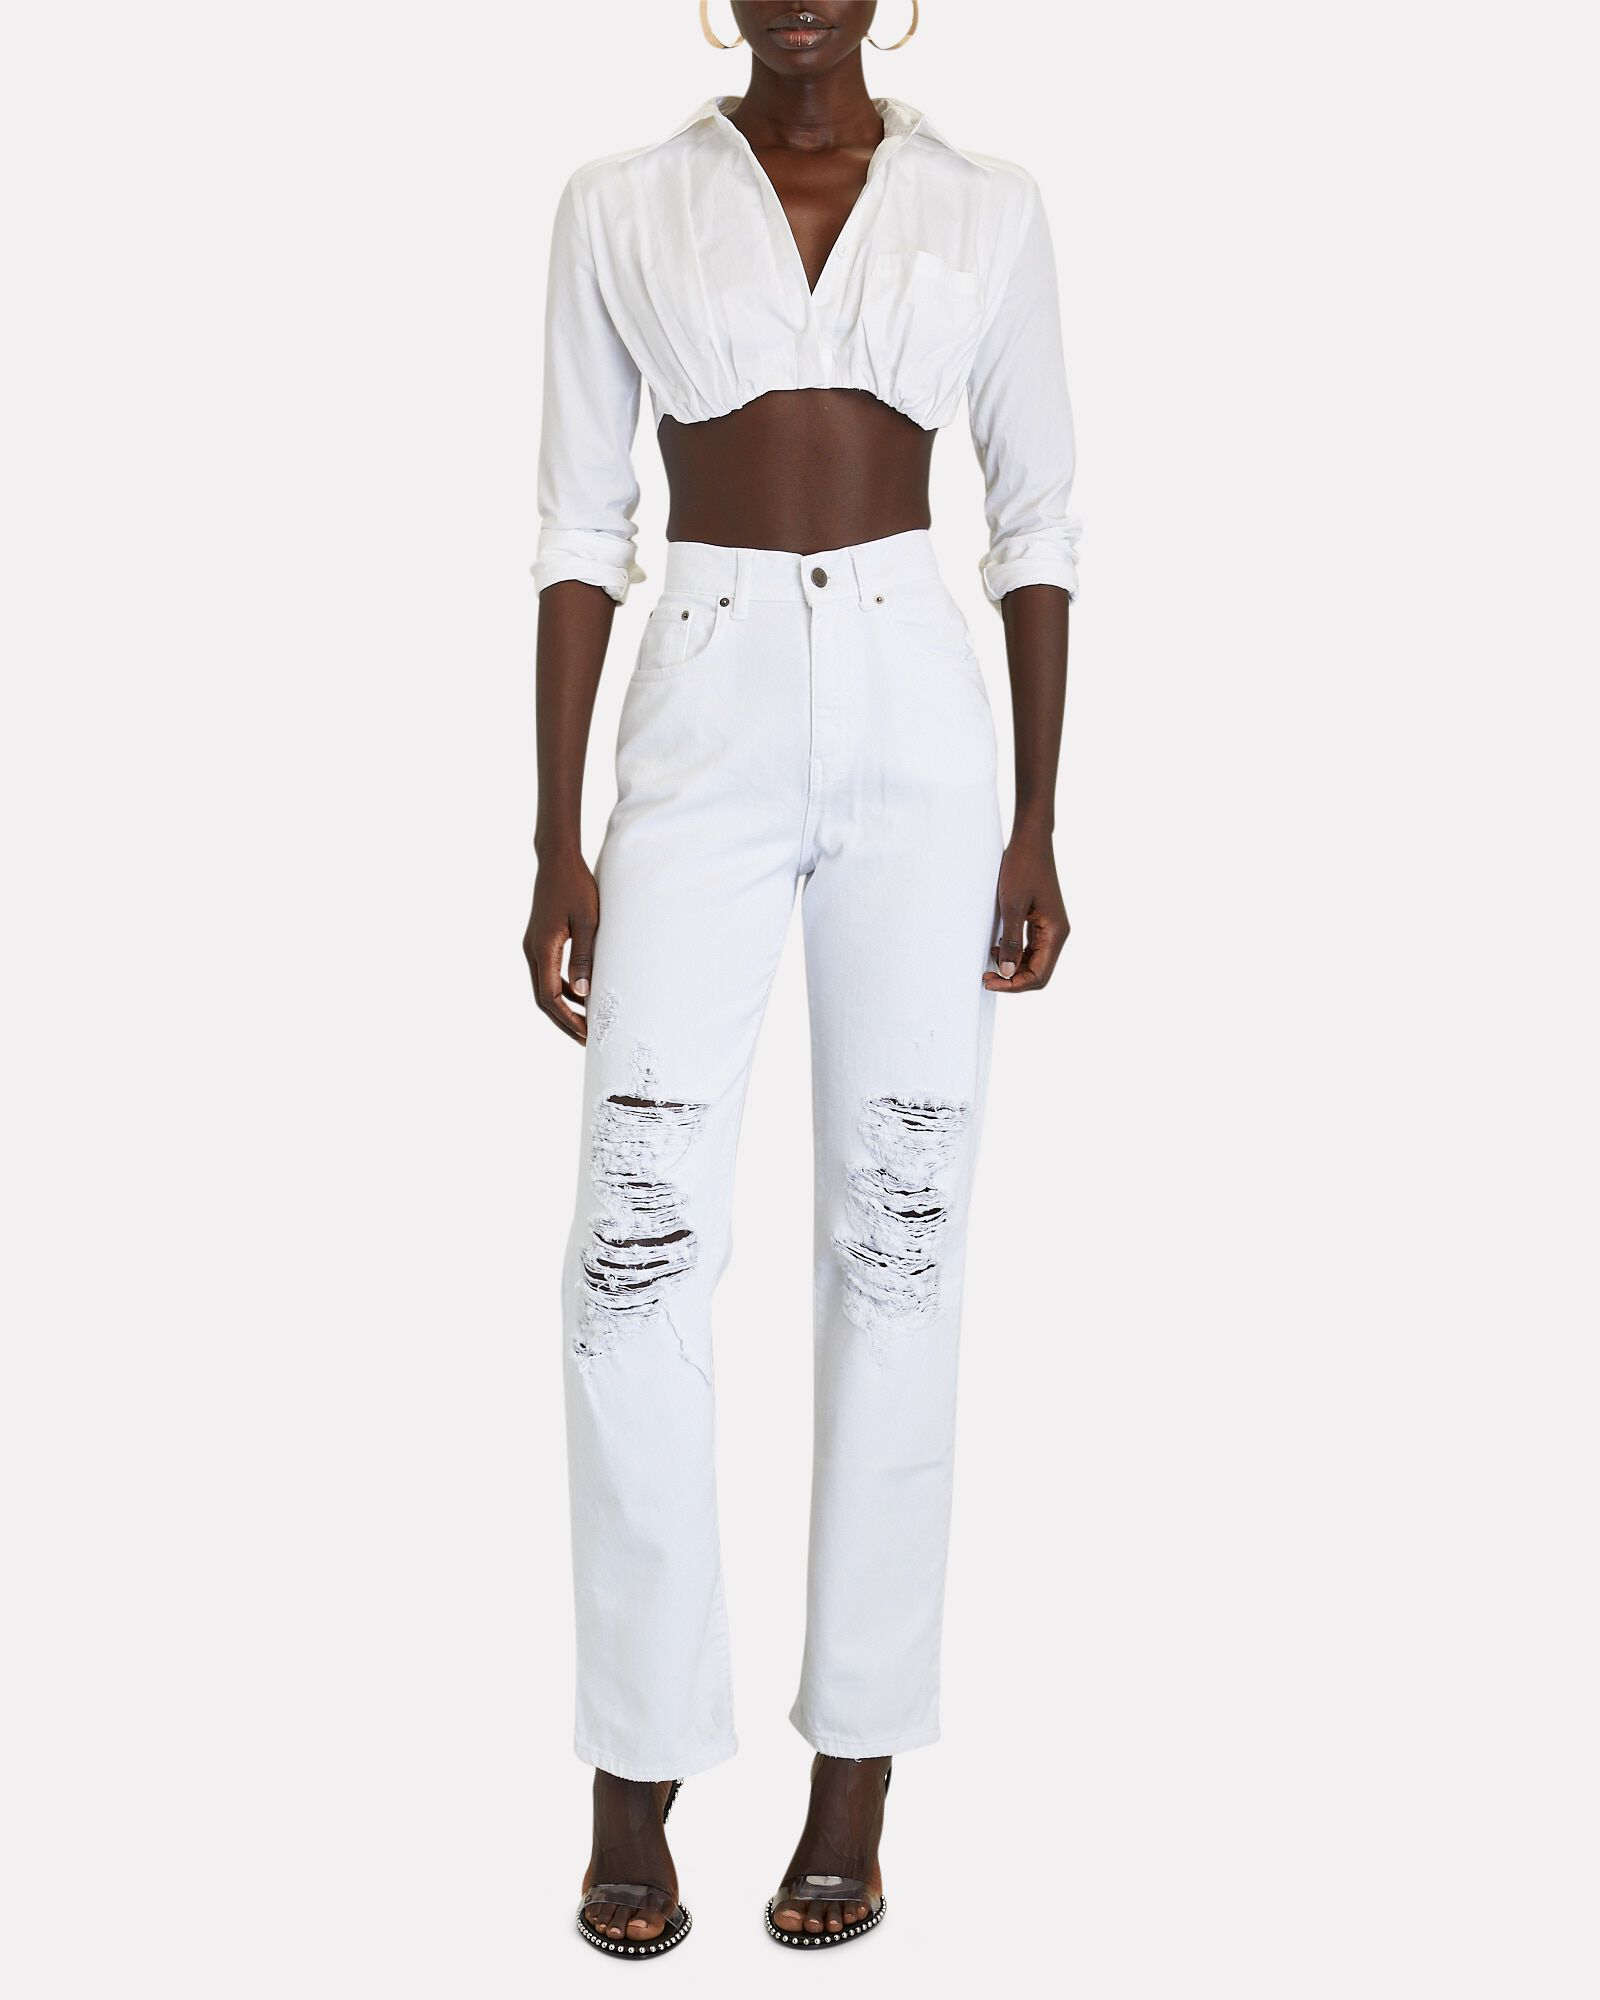 Chris Distressed Straight-Leg Jeans, VINTAGE WHITE, hi-res